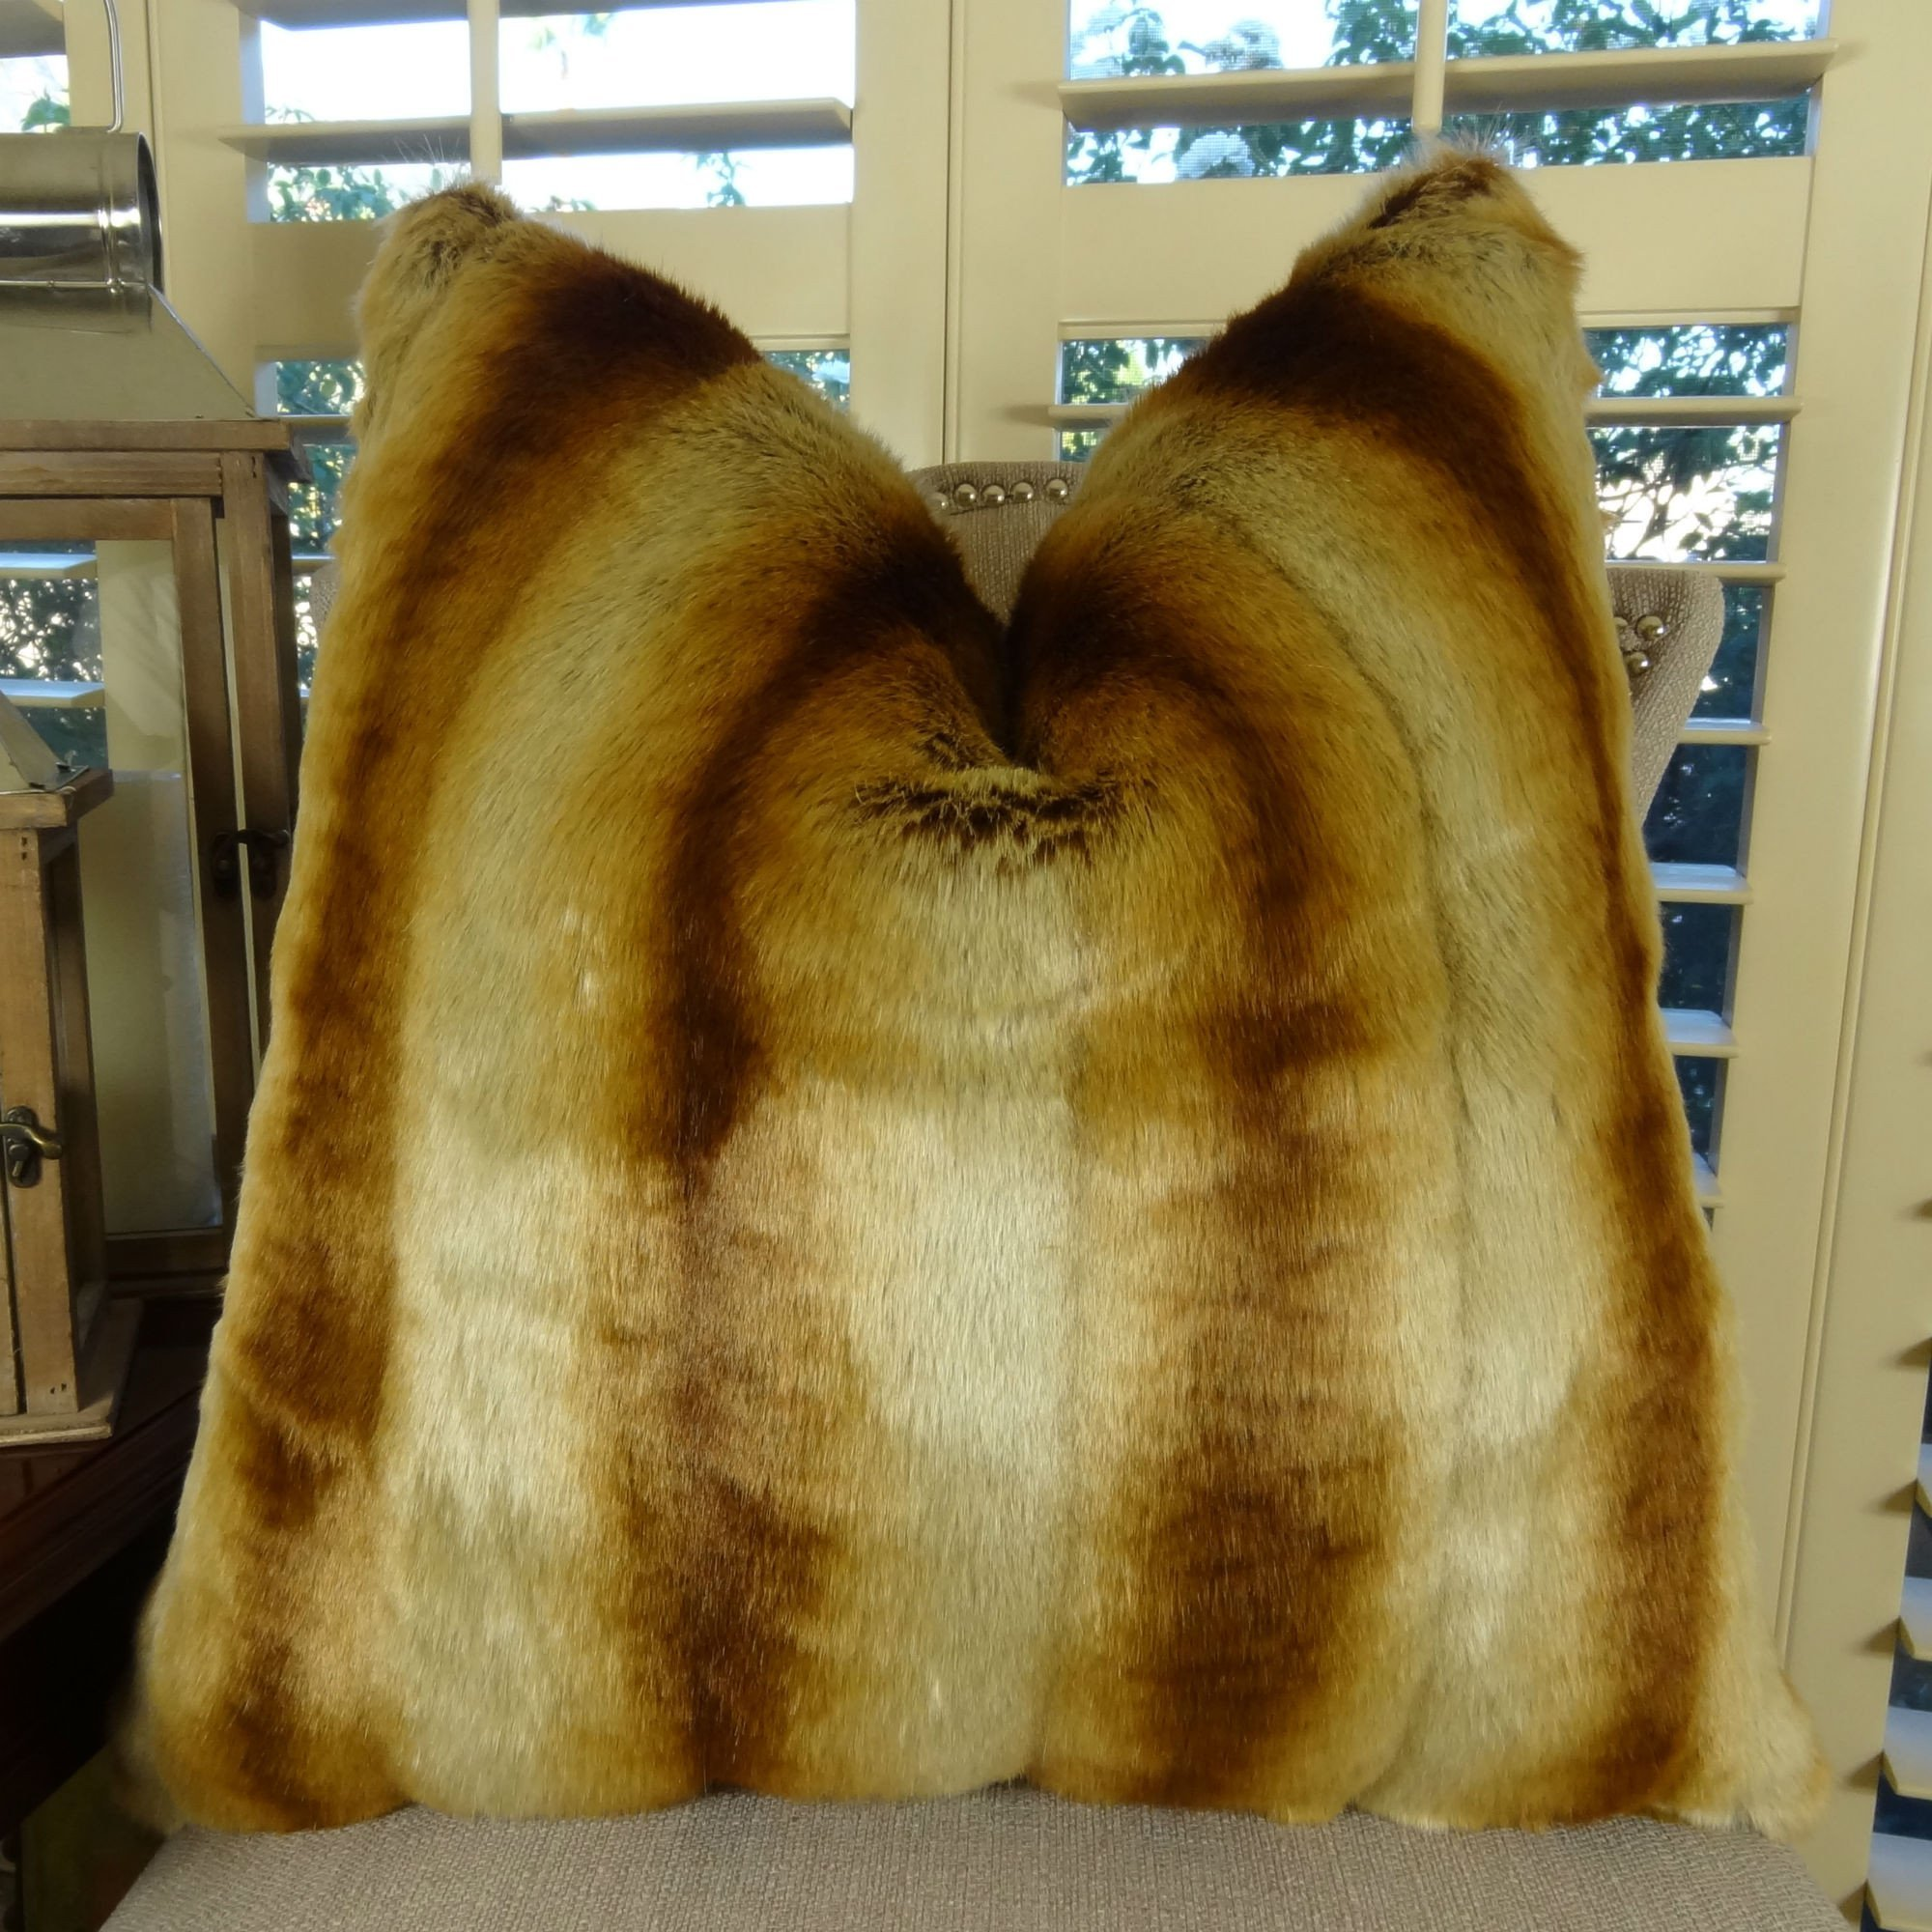 Thomas Collection Chinchilla Faux Fur pillow, Chinchilla Faux Fur, Beige Tan Goldish Brown Chinchilla Fur pillow, Soft Fur, COVER ONLY, NO INSERT, Made in America, 17418